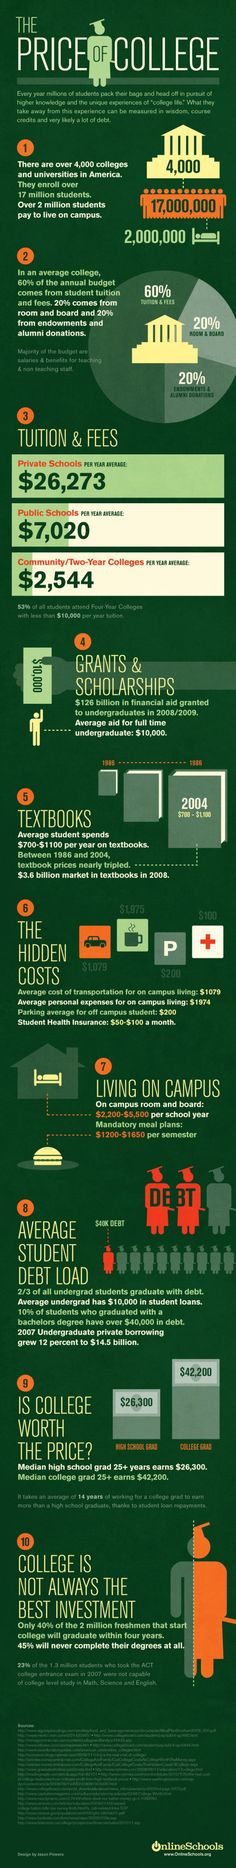 Price of college??? like the info/graphics?  the question is keeping graphics up-to-date.